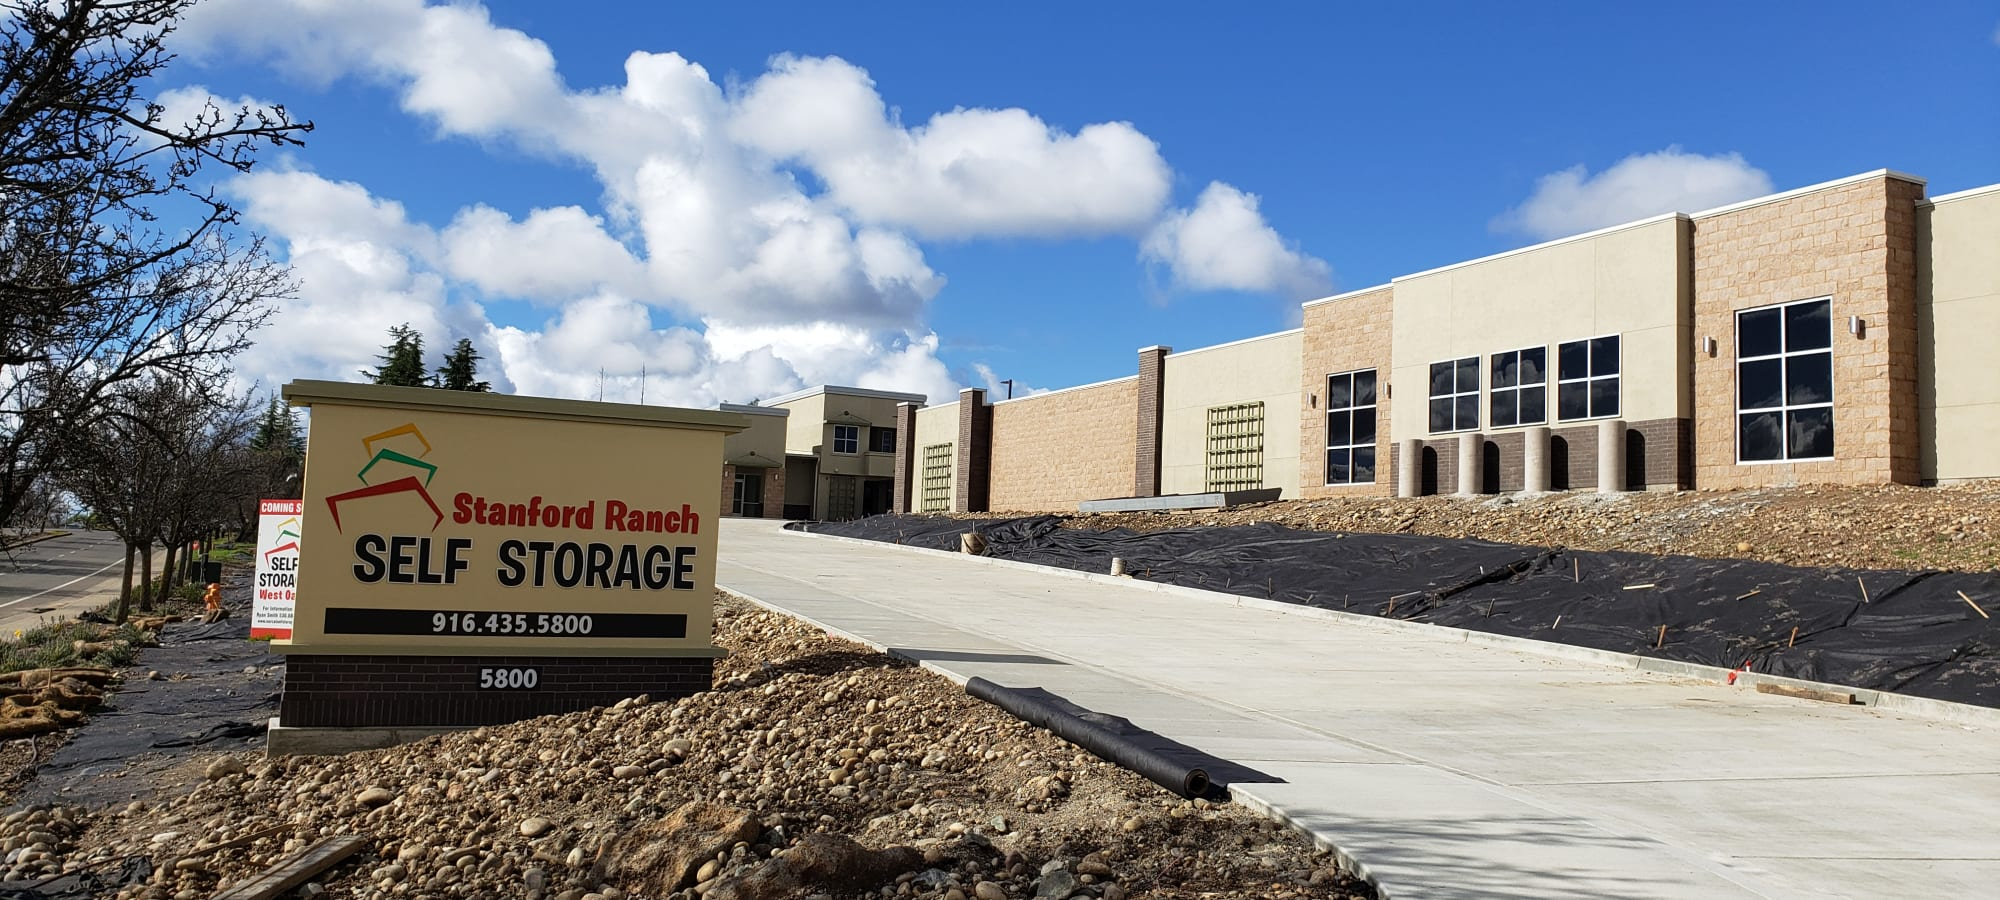 Stanford Ranch Self Storage in Rocklin, California - Home of the 1st Year Price Guarantee!